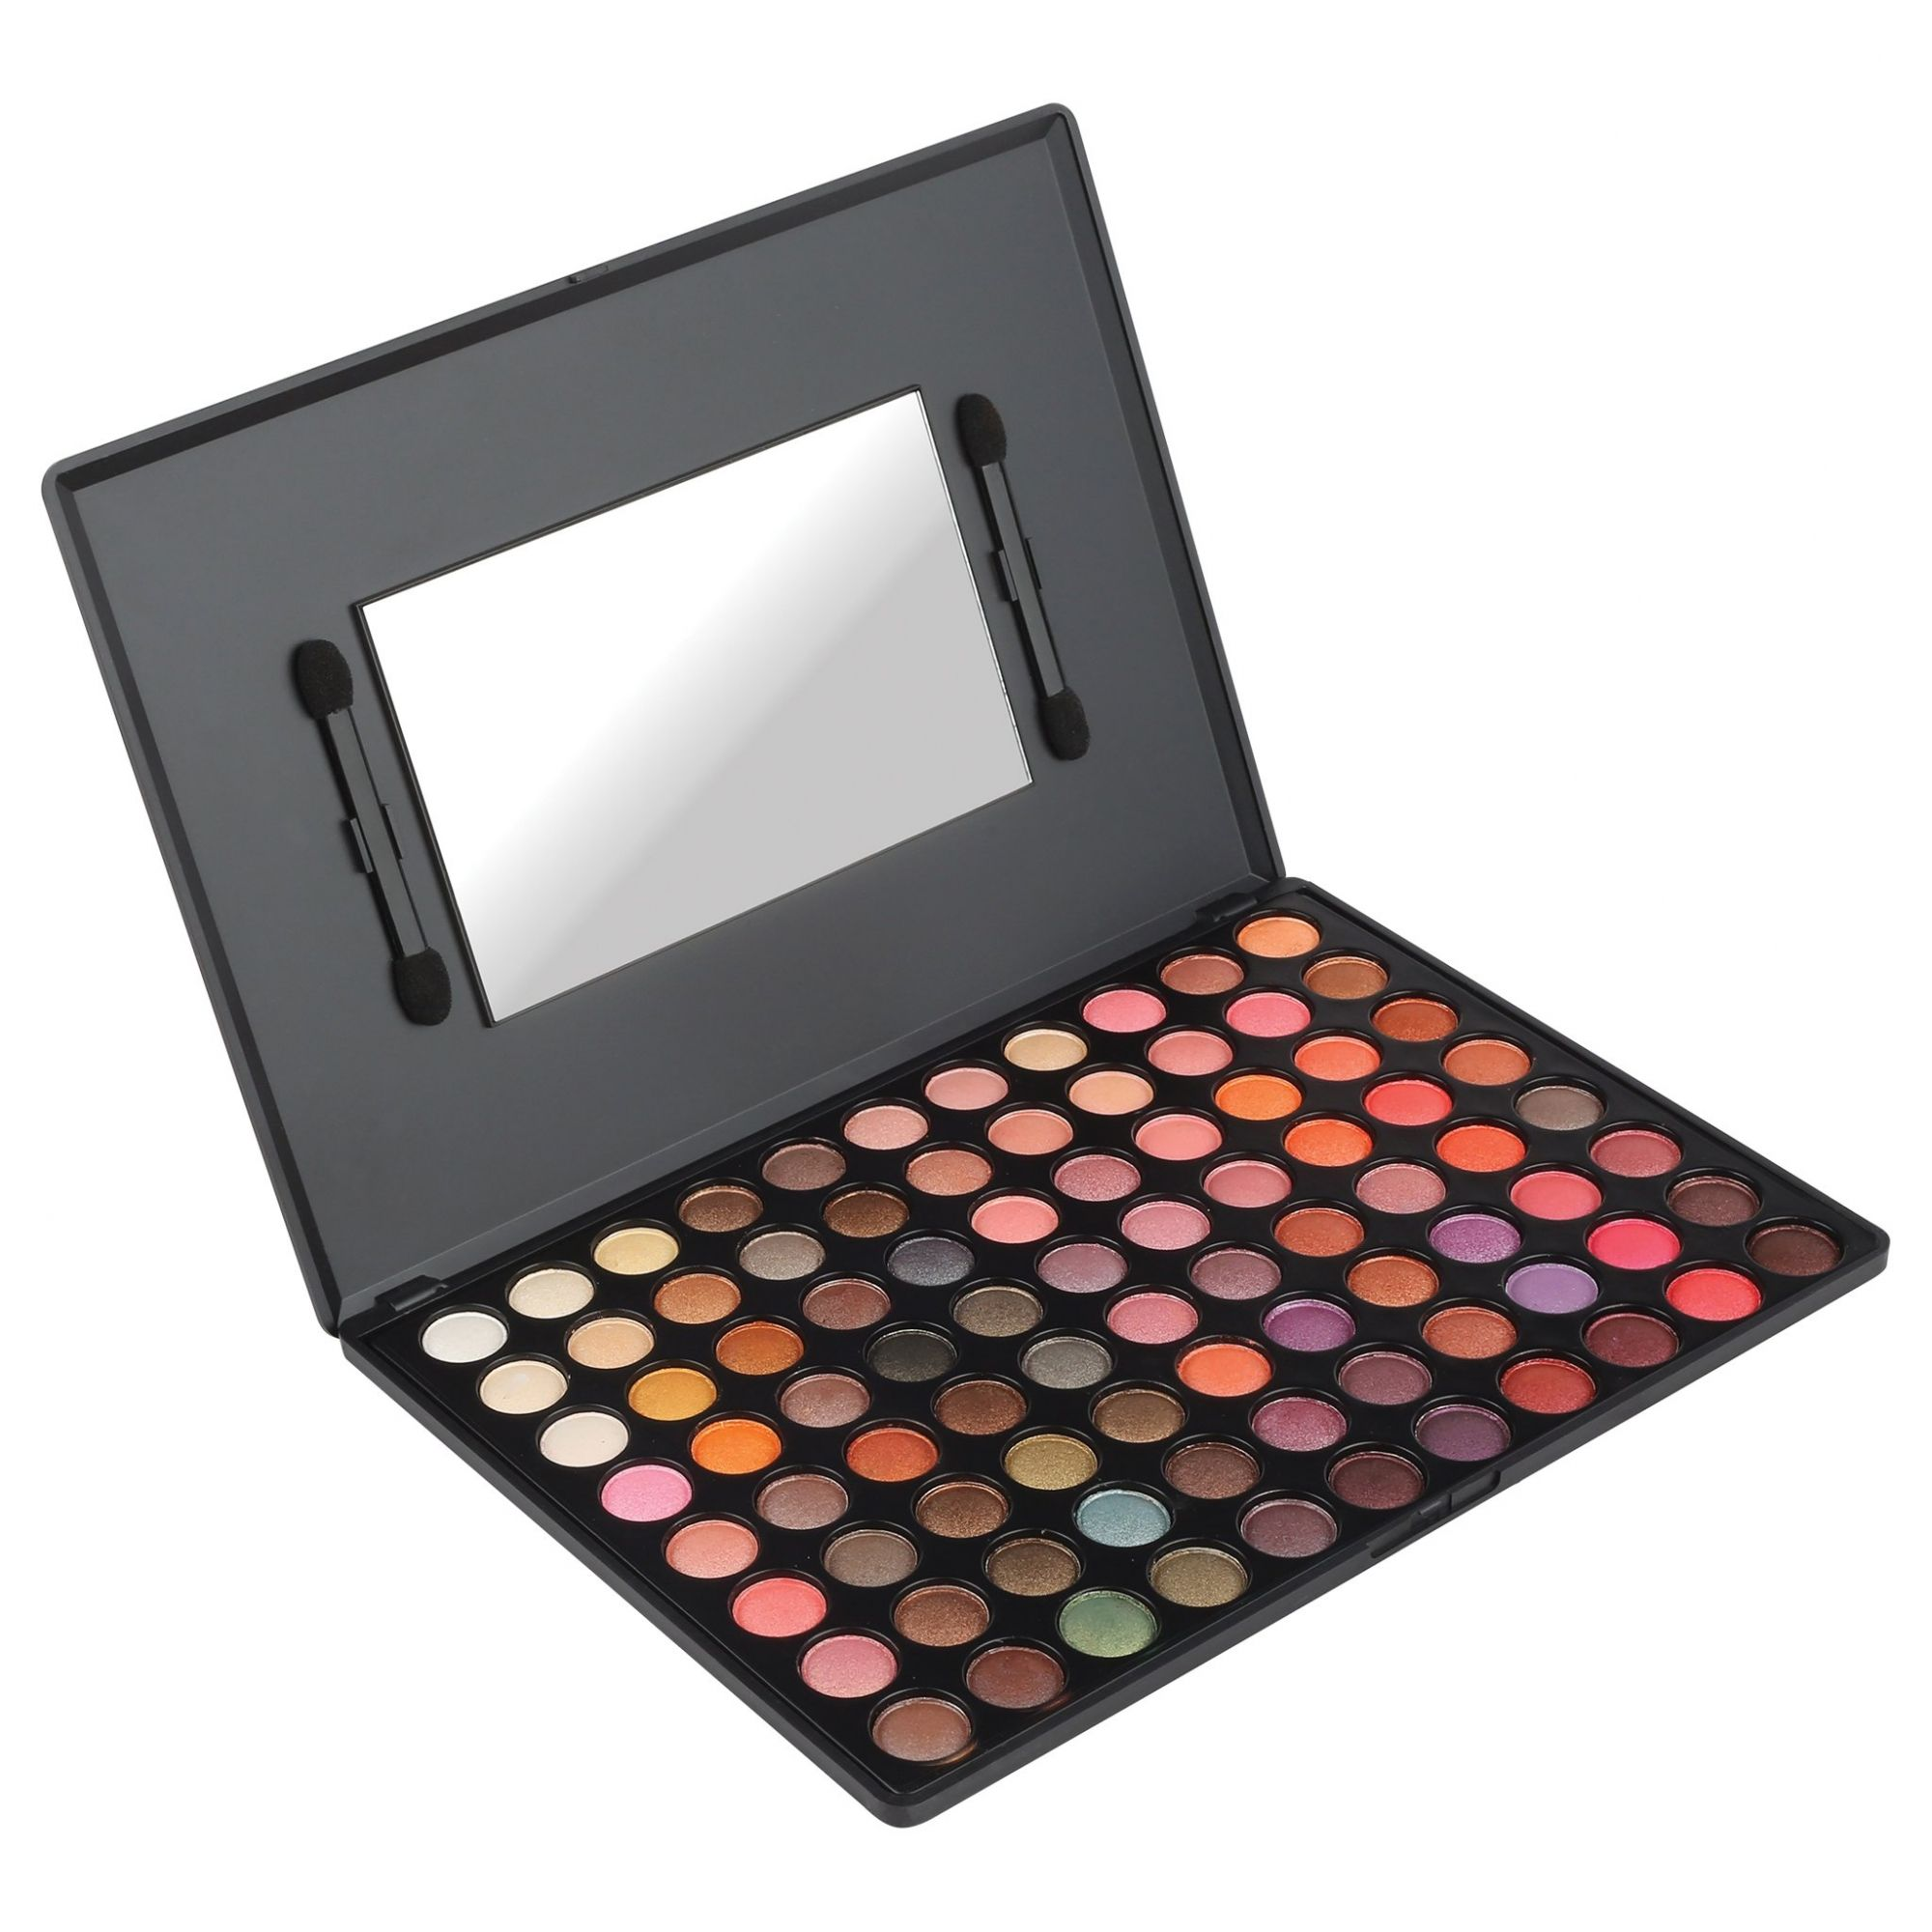 88 METAL MANIA PALETTE | COASTAL SCENTS